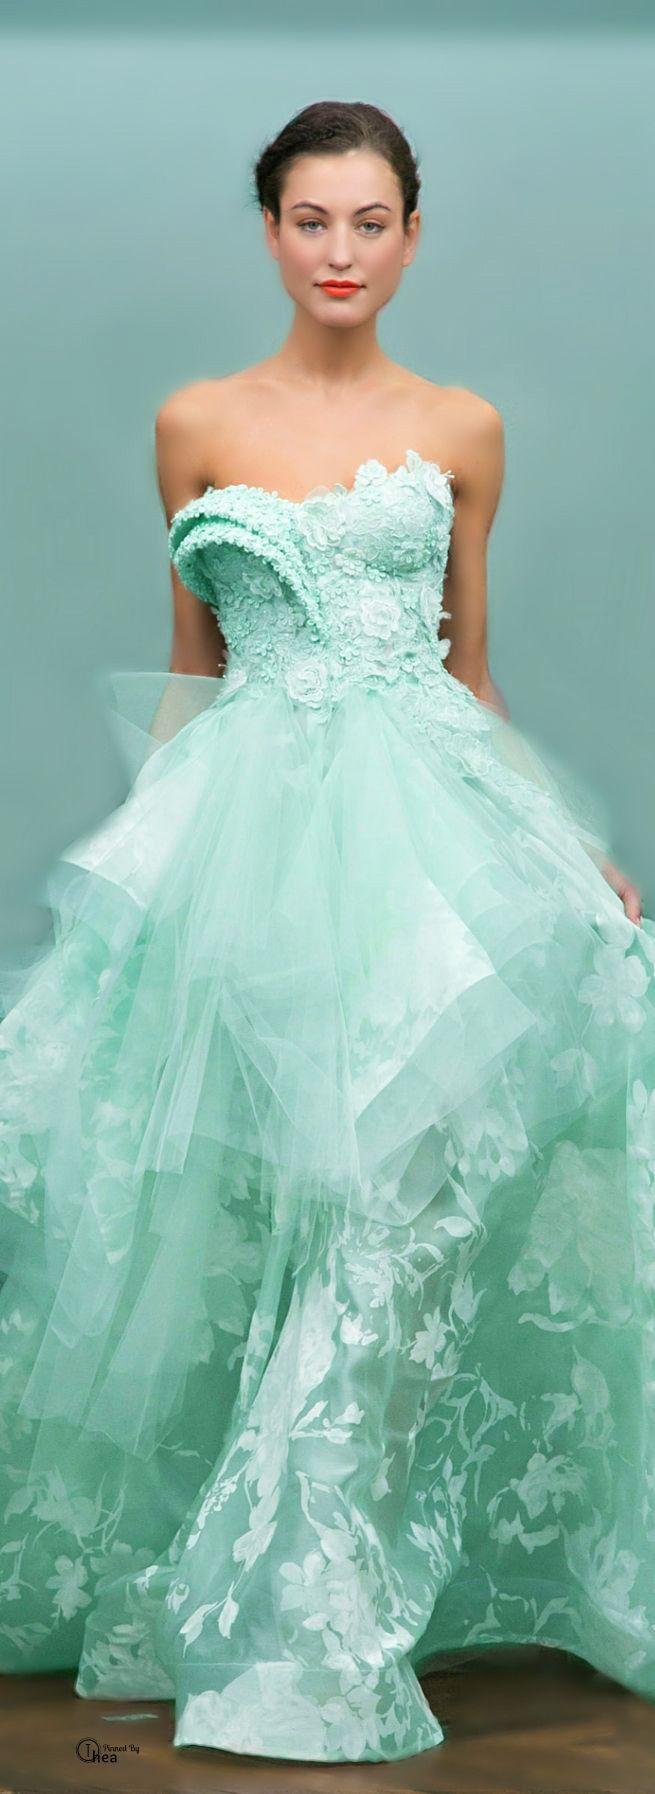 Green dress for wedding party   best MINT images on Pinterest  Mint green Turquoise and Aqua blue